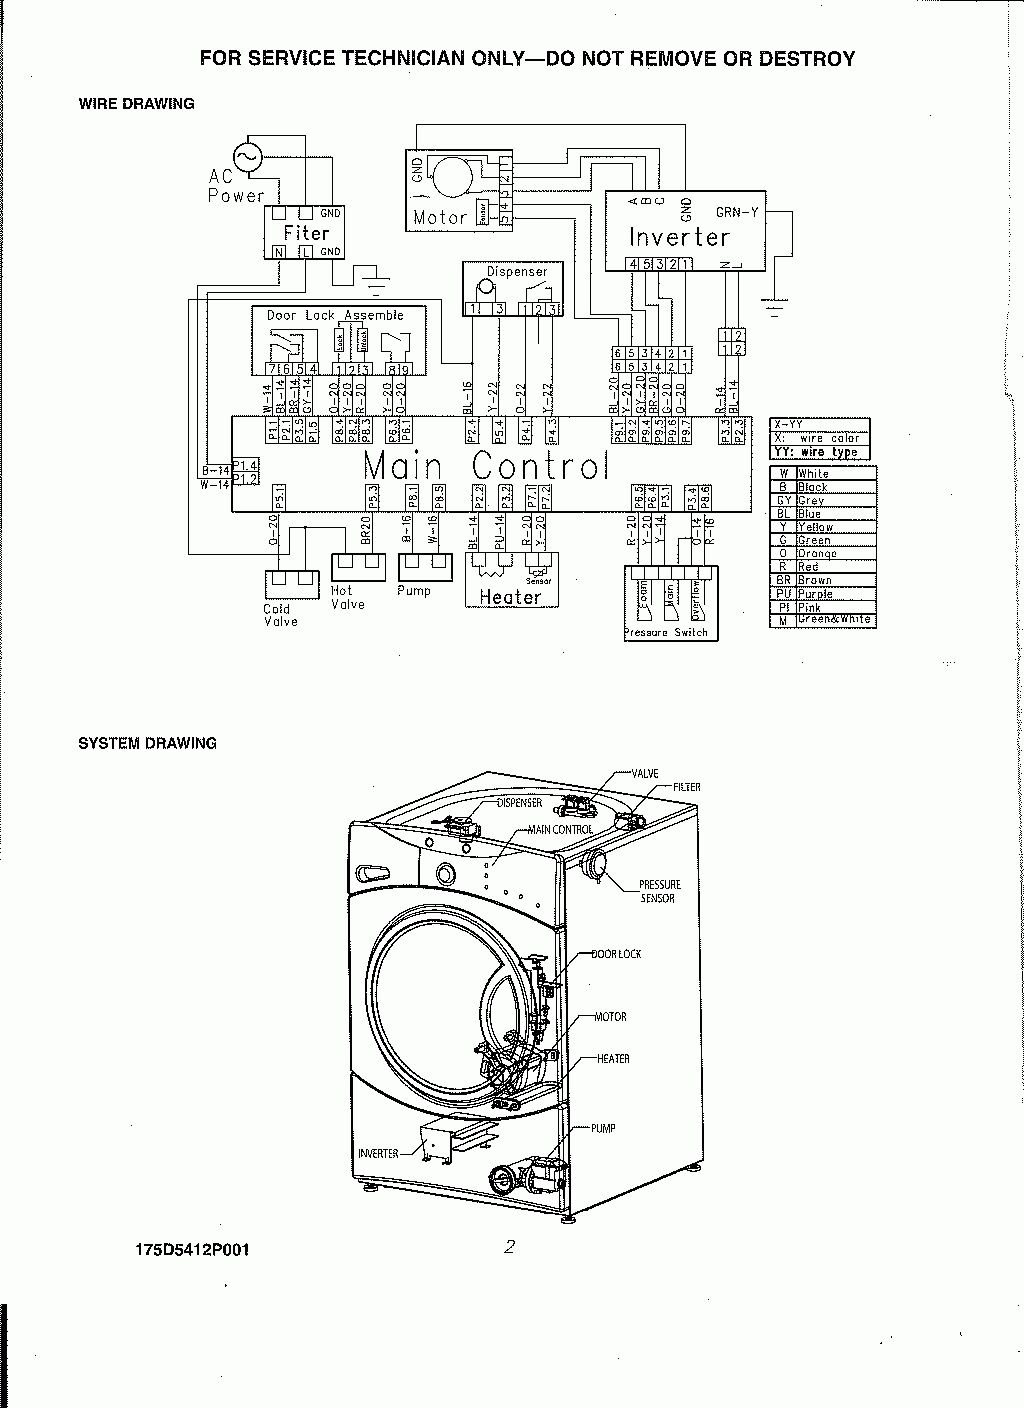 [DIAGRAM] Washing Machine Parts Diagram Media FULL Version